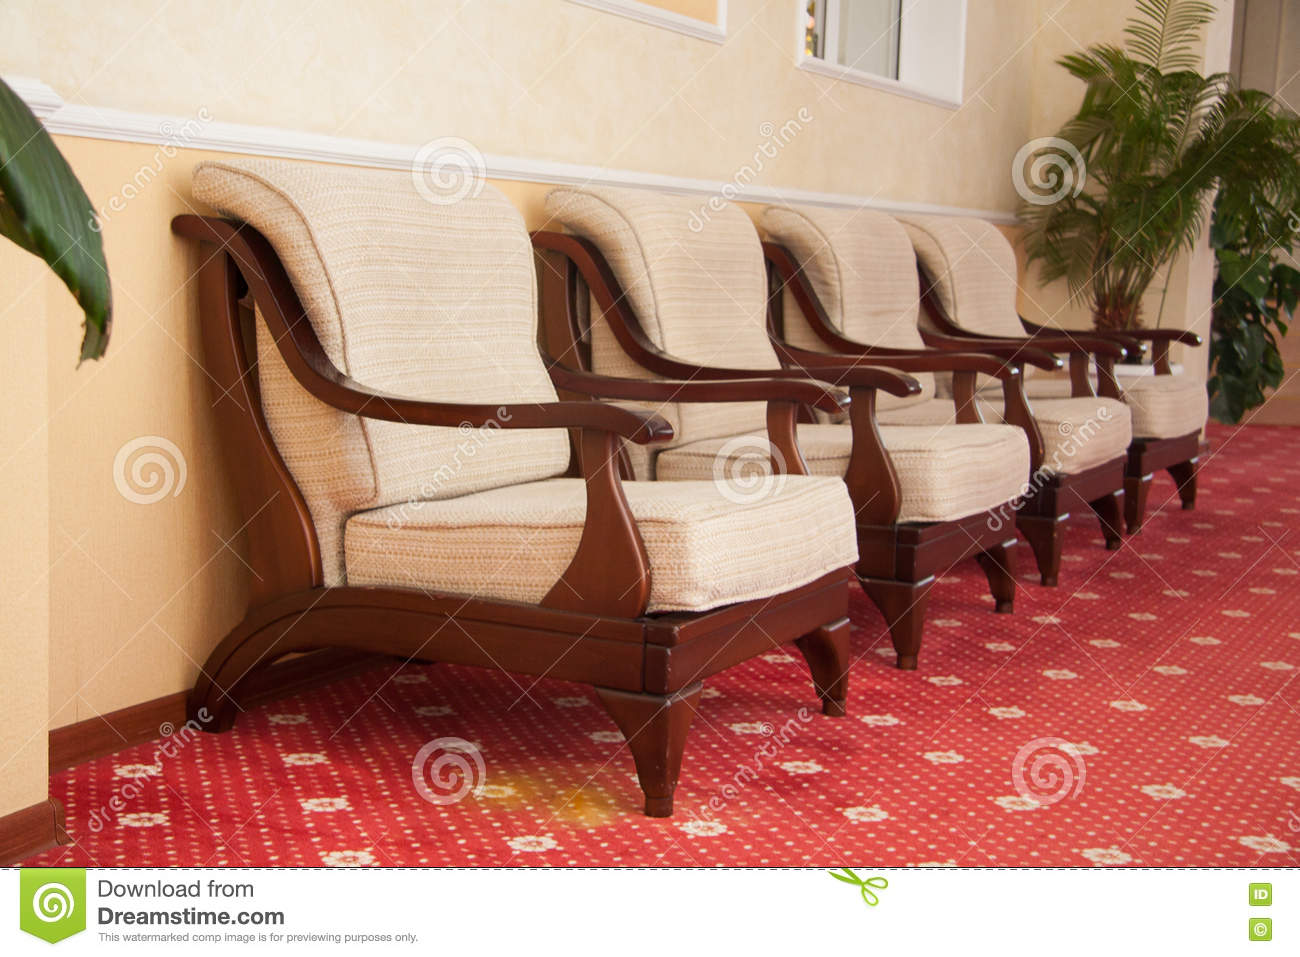 a beautiful modern hotel interior stock photo - image: 74066897